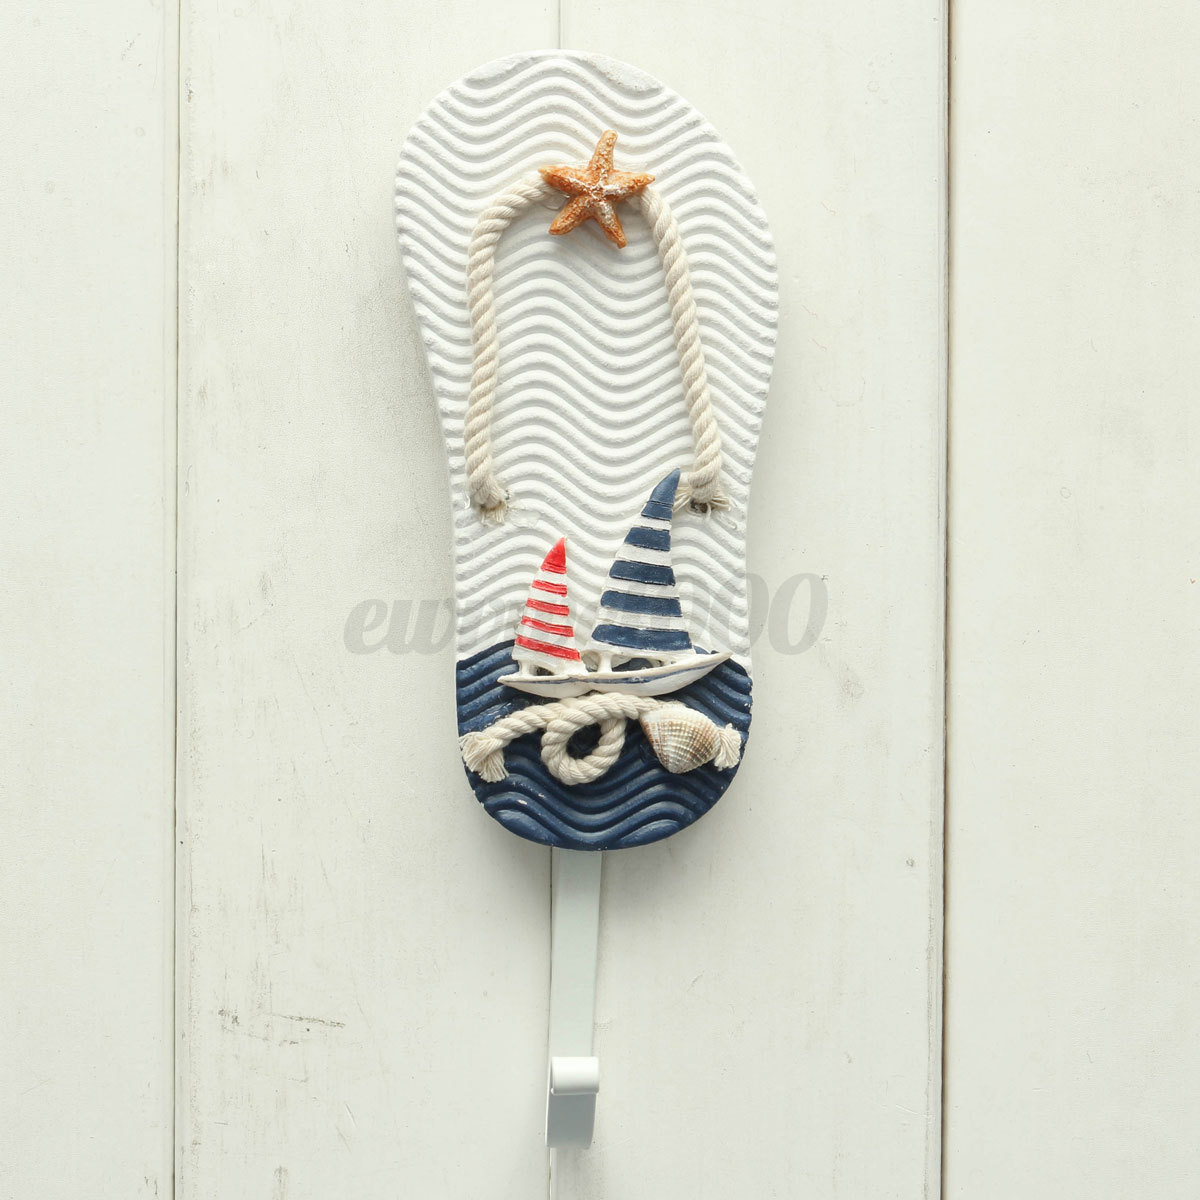 Nautical wall hanging decor : Wooden nautical decor wall hanging hook decarative coat